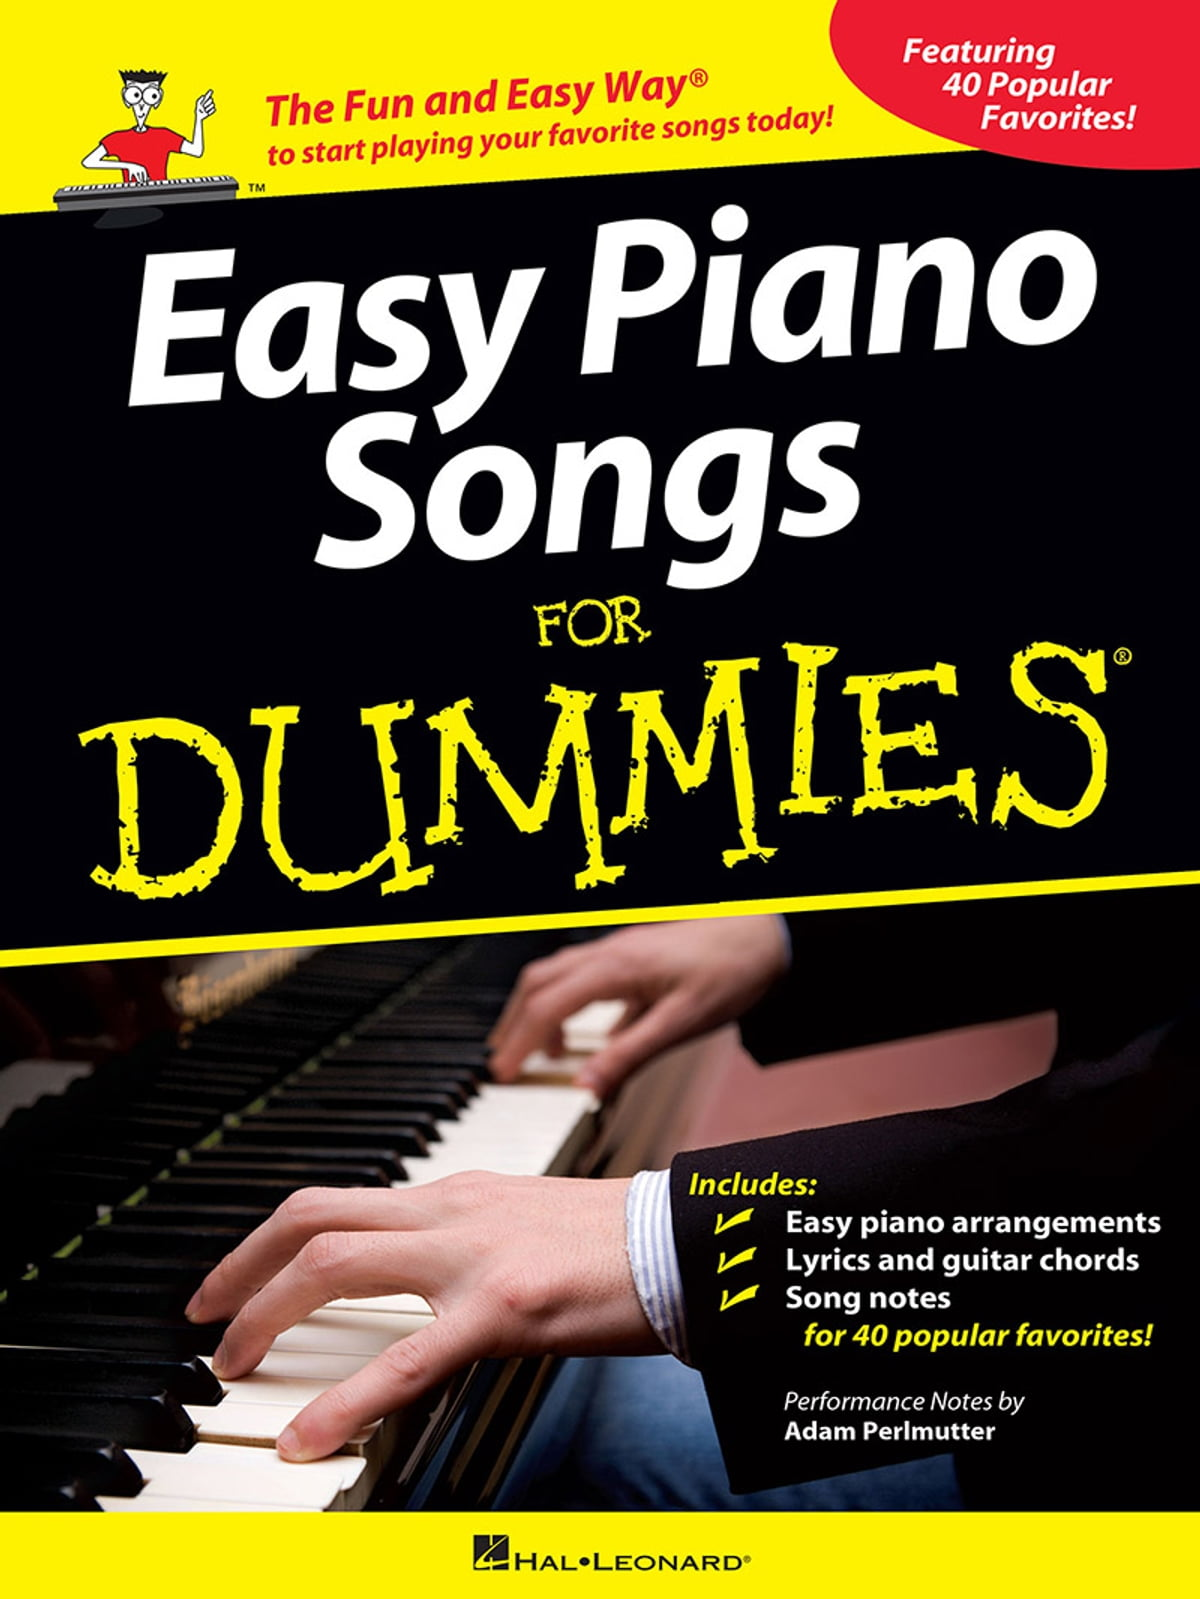 Easy Piano Songs For Dummies Ebook By Adam Perlmutter